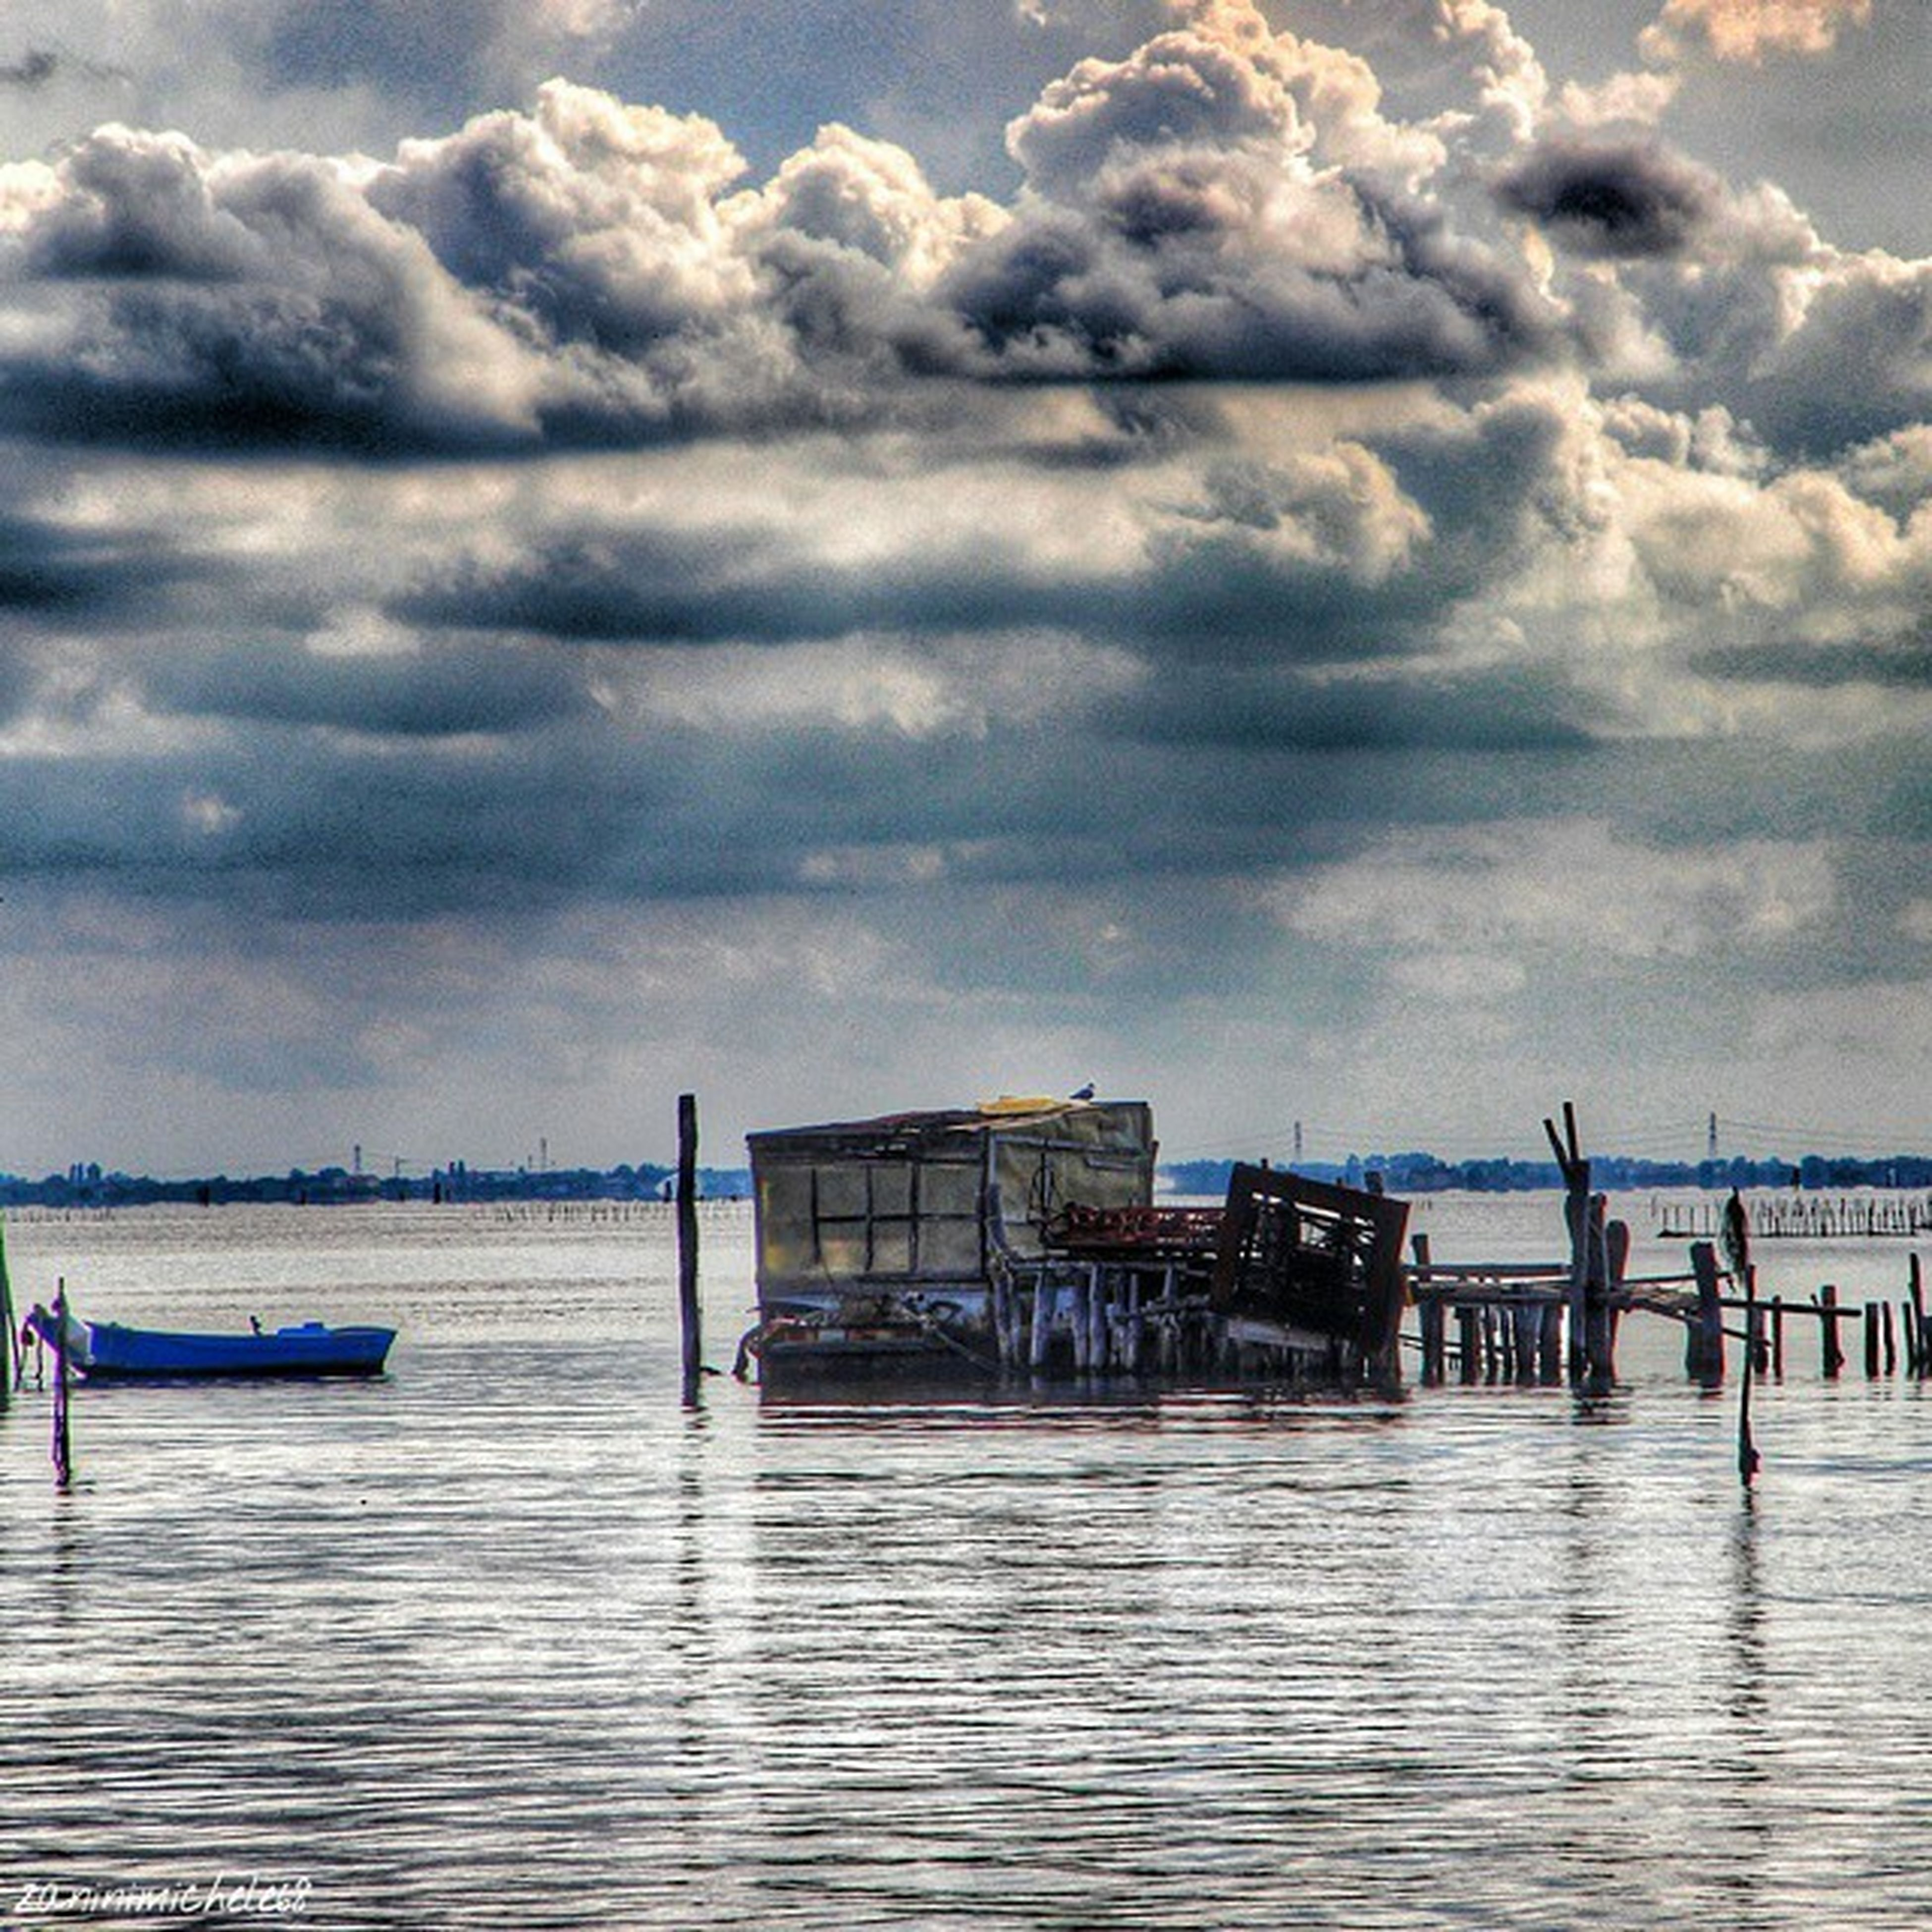 water, sea, sky, cloud - sky, pier, cloudy, waterfront, tranquil scene, tranquility, scenics, horizon over water, cloud, nature, beauty in nature, built structure, rippled, idyllic, weather, jetty, outdoors